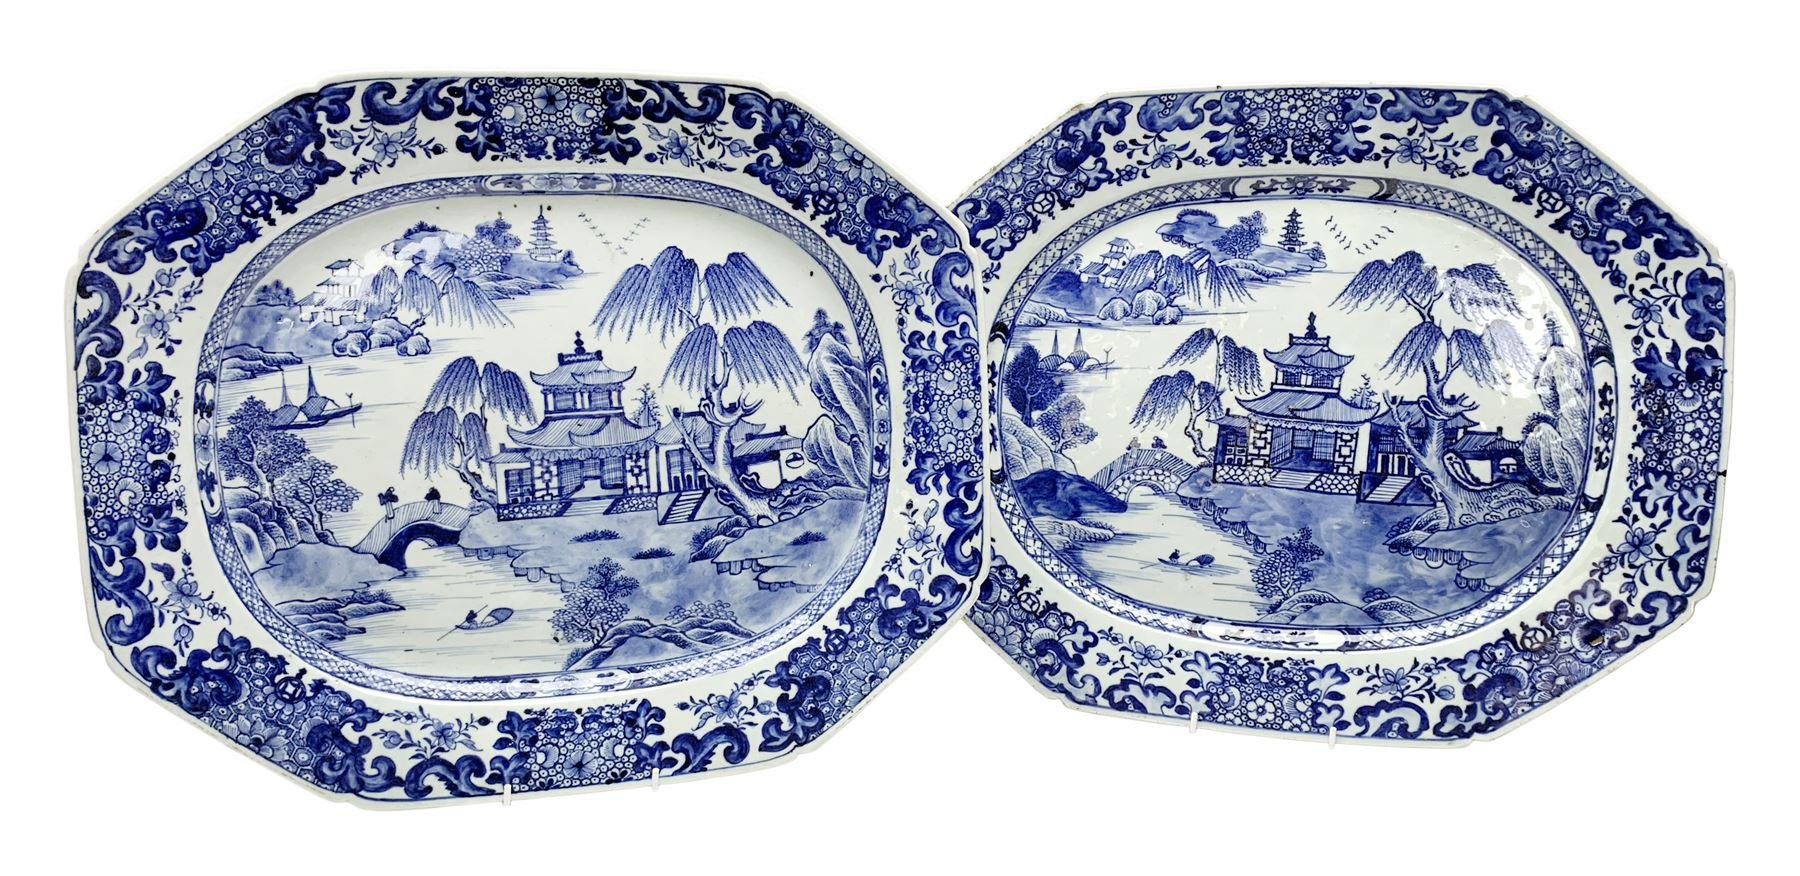 Pair of late 18th/early 19th century Chinese export blue and white platters